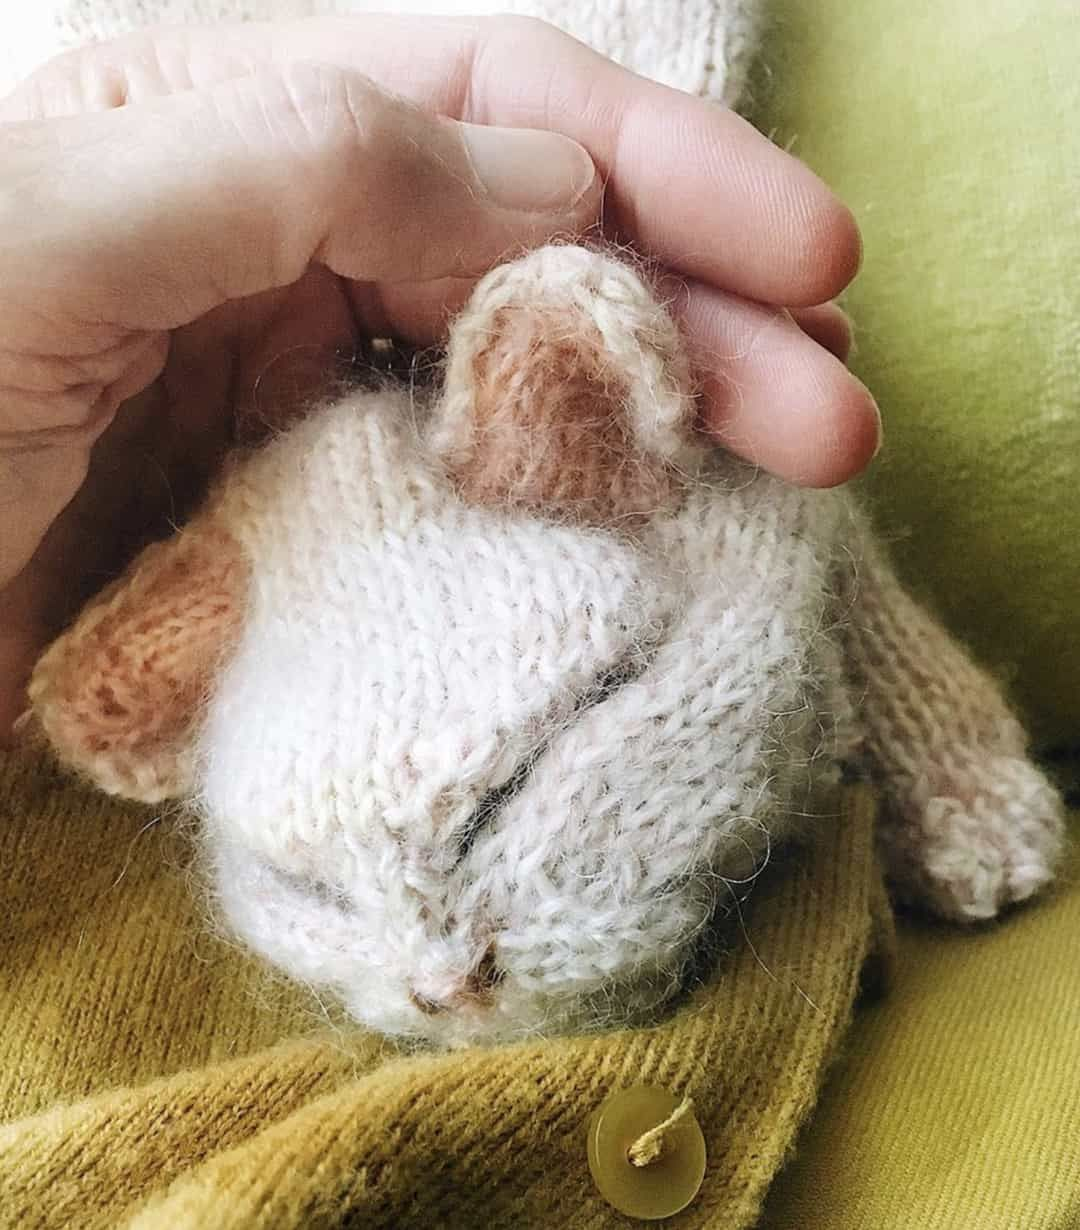 How to knit a cat – knitting pattern and expert tips - From Britain with Love